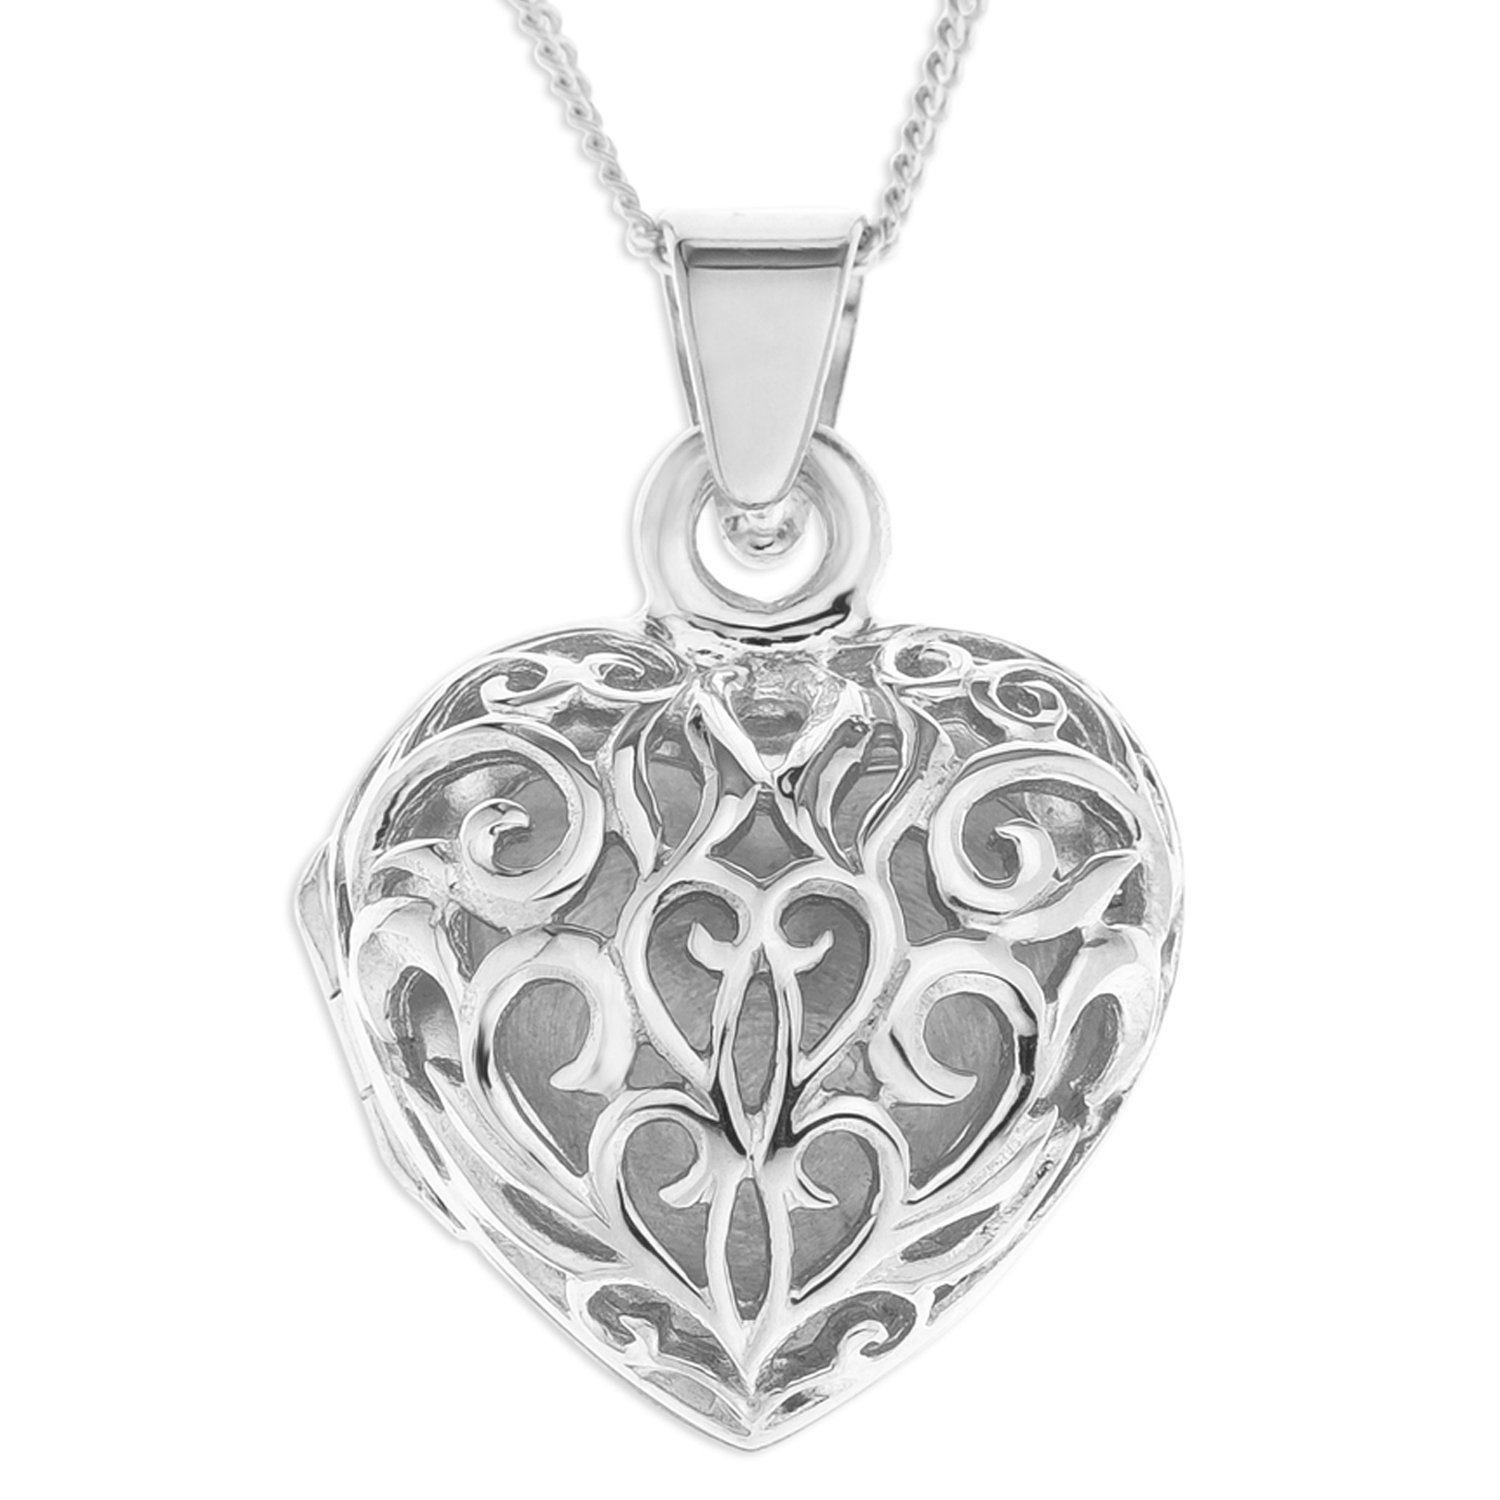 jewellery bethan silver sterling oval real necklace locket lockets